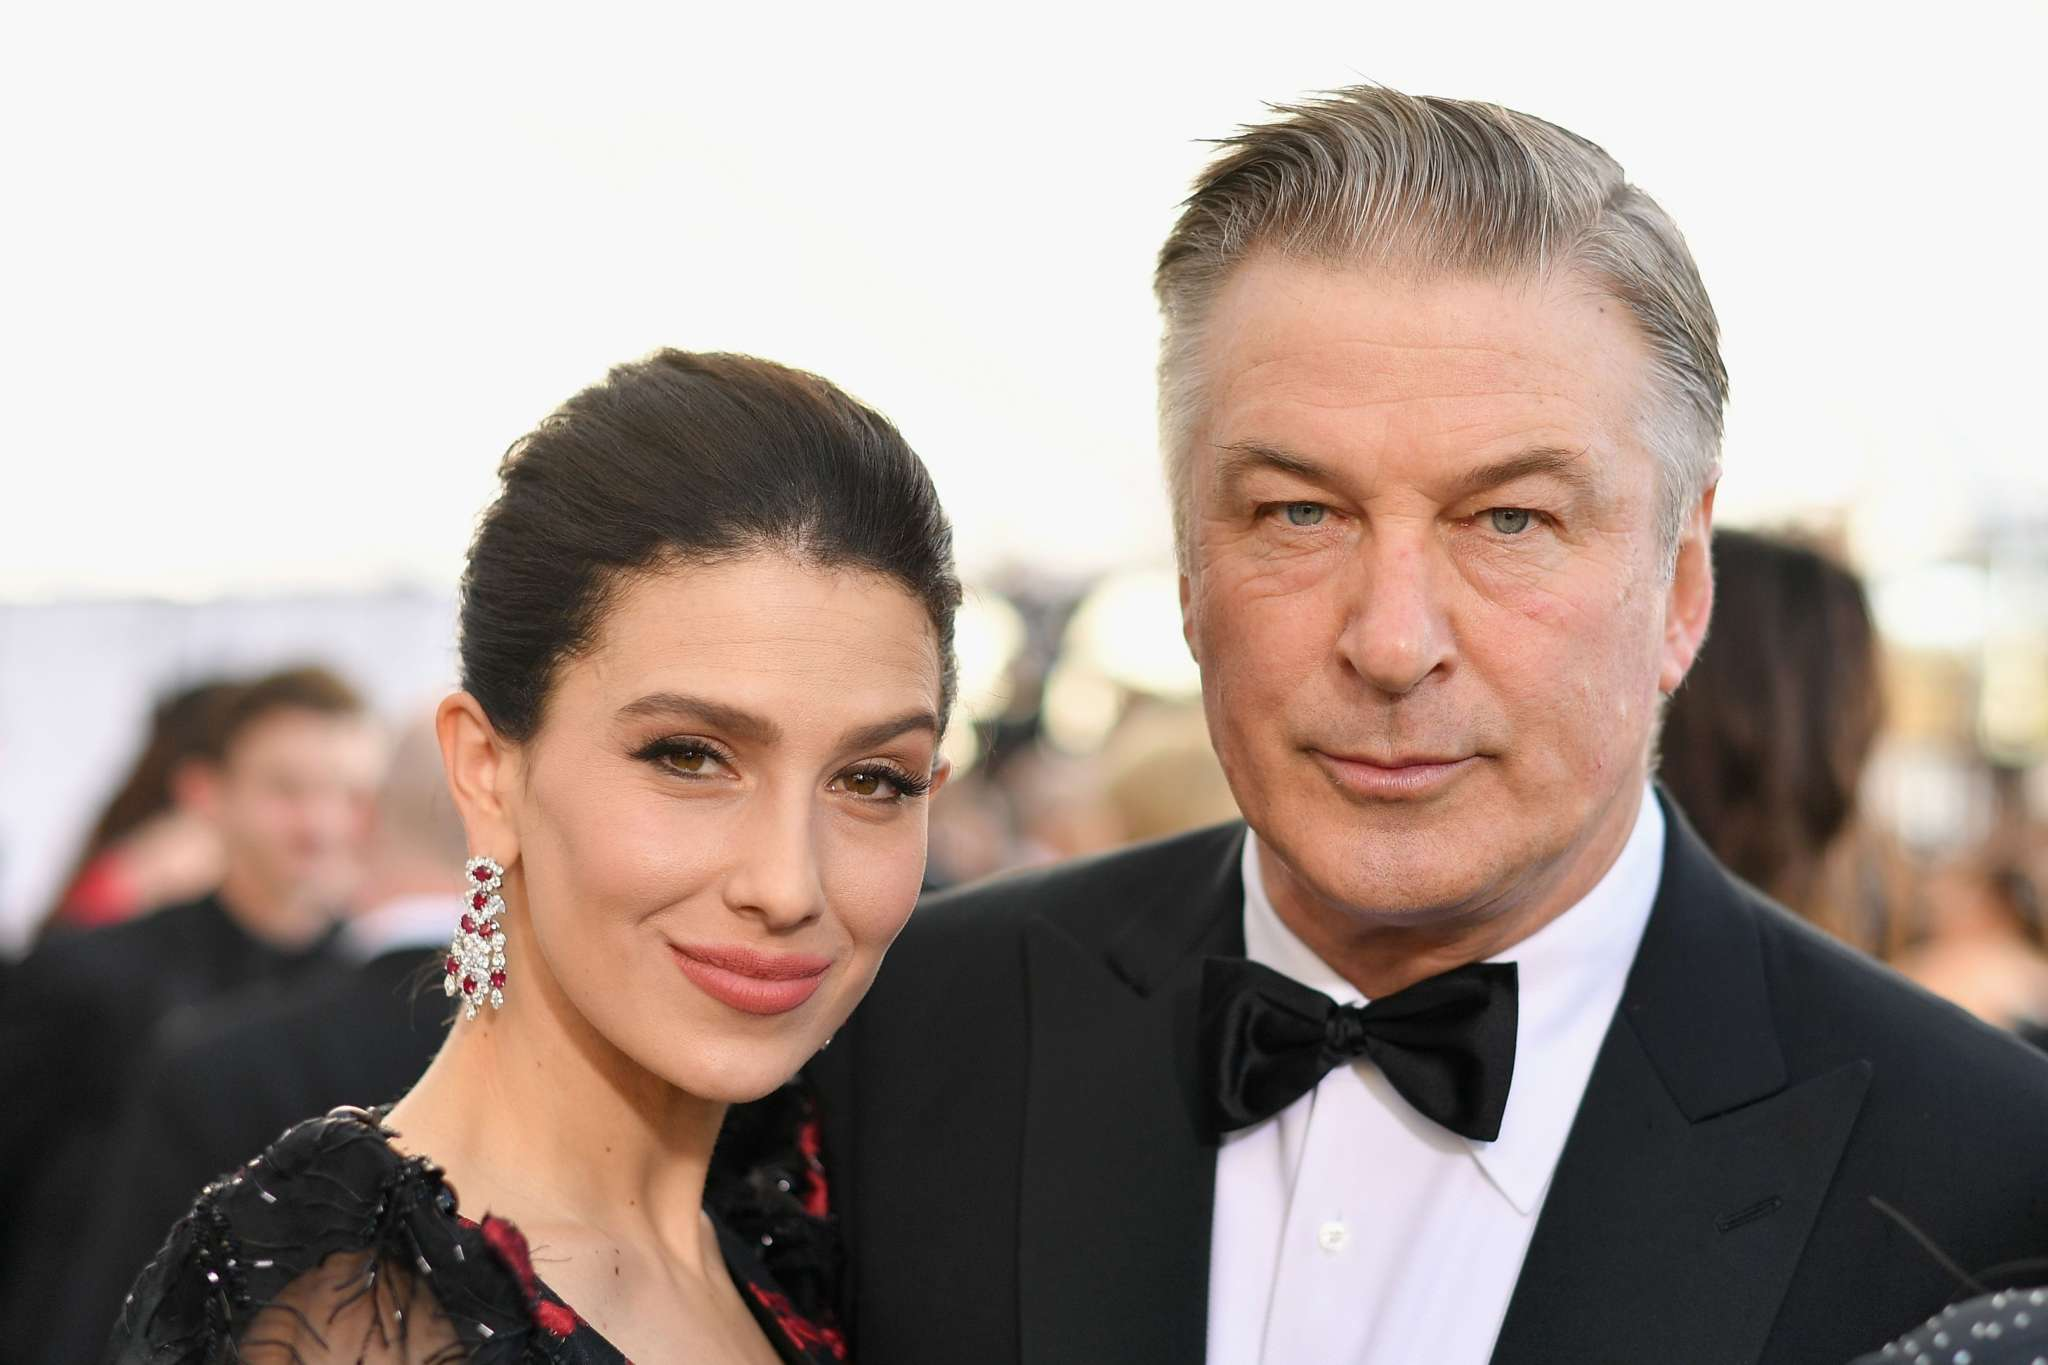 Hilaria And Alec Baldwin Welcome Their 5th Baby – Find Out The Gender And More!